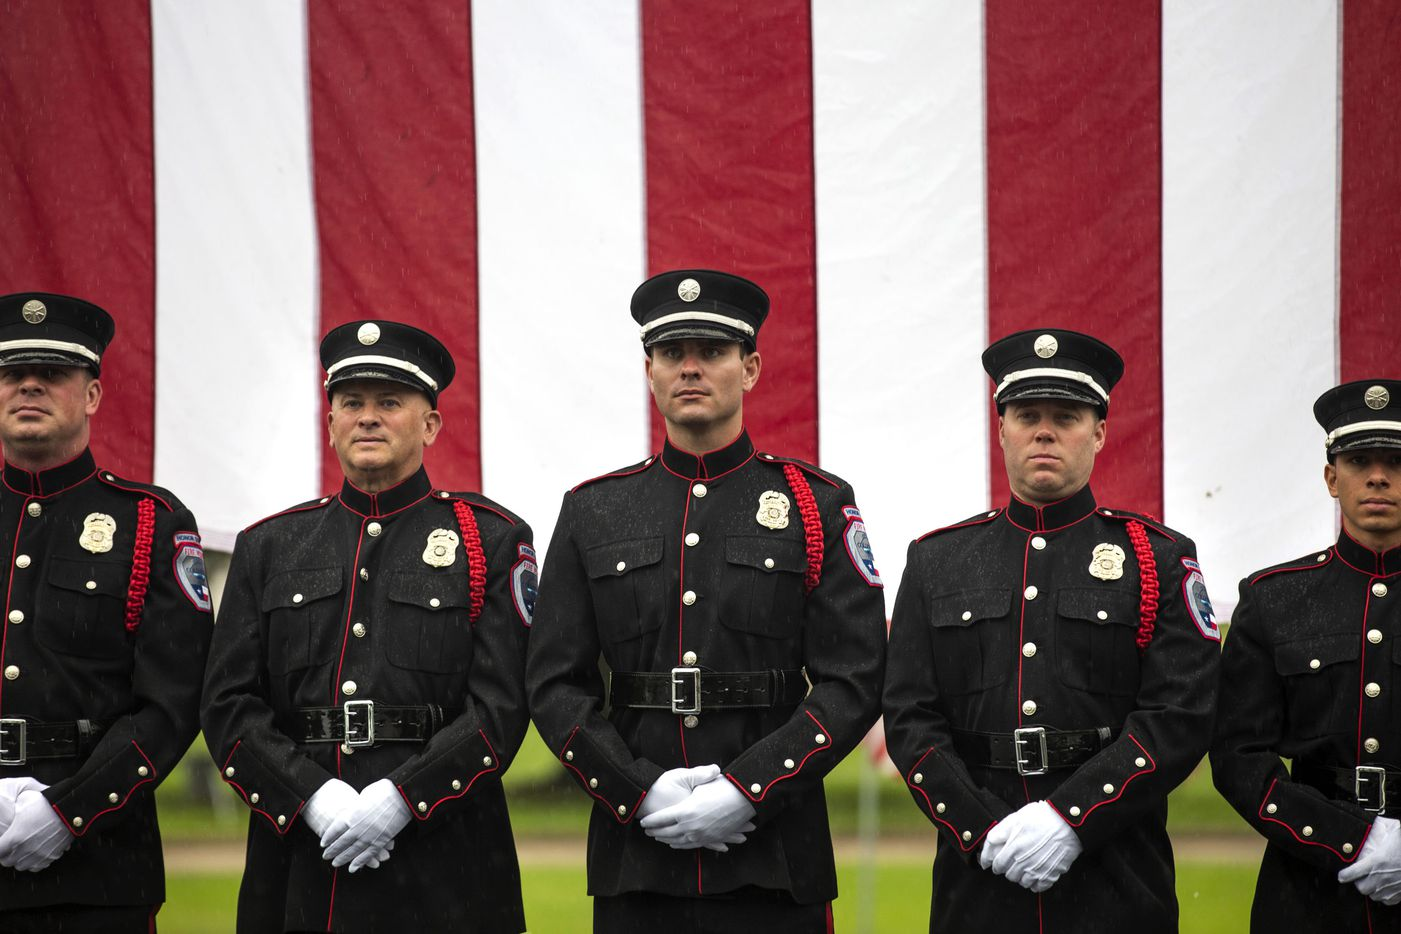 From left, Matt Olson, William Savage, Jason Fisch, William Hutton and Martin Mendoza  of the Colleyville Fire Department Honor Guard stand beneath a large American flag for a photo following their participation in the the virtual Memorial Day Remembrance Ceremony at the Bluebonnet Hills Funeral Home in Colleyville, Texas, on Monday, May 25, 2020.